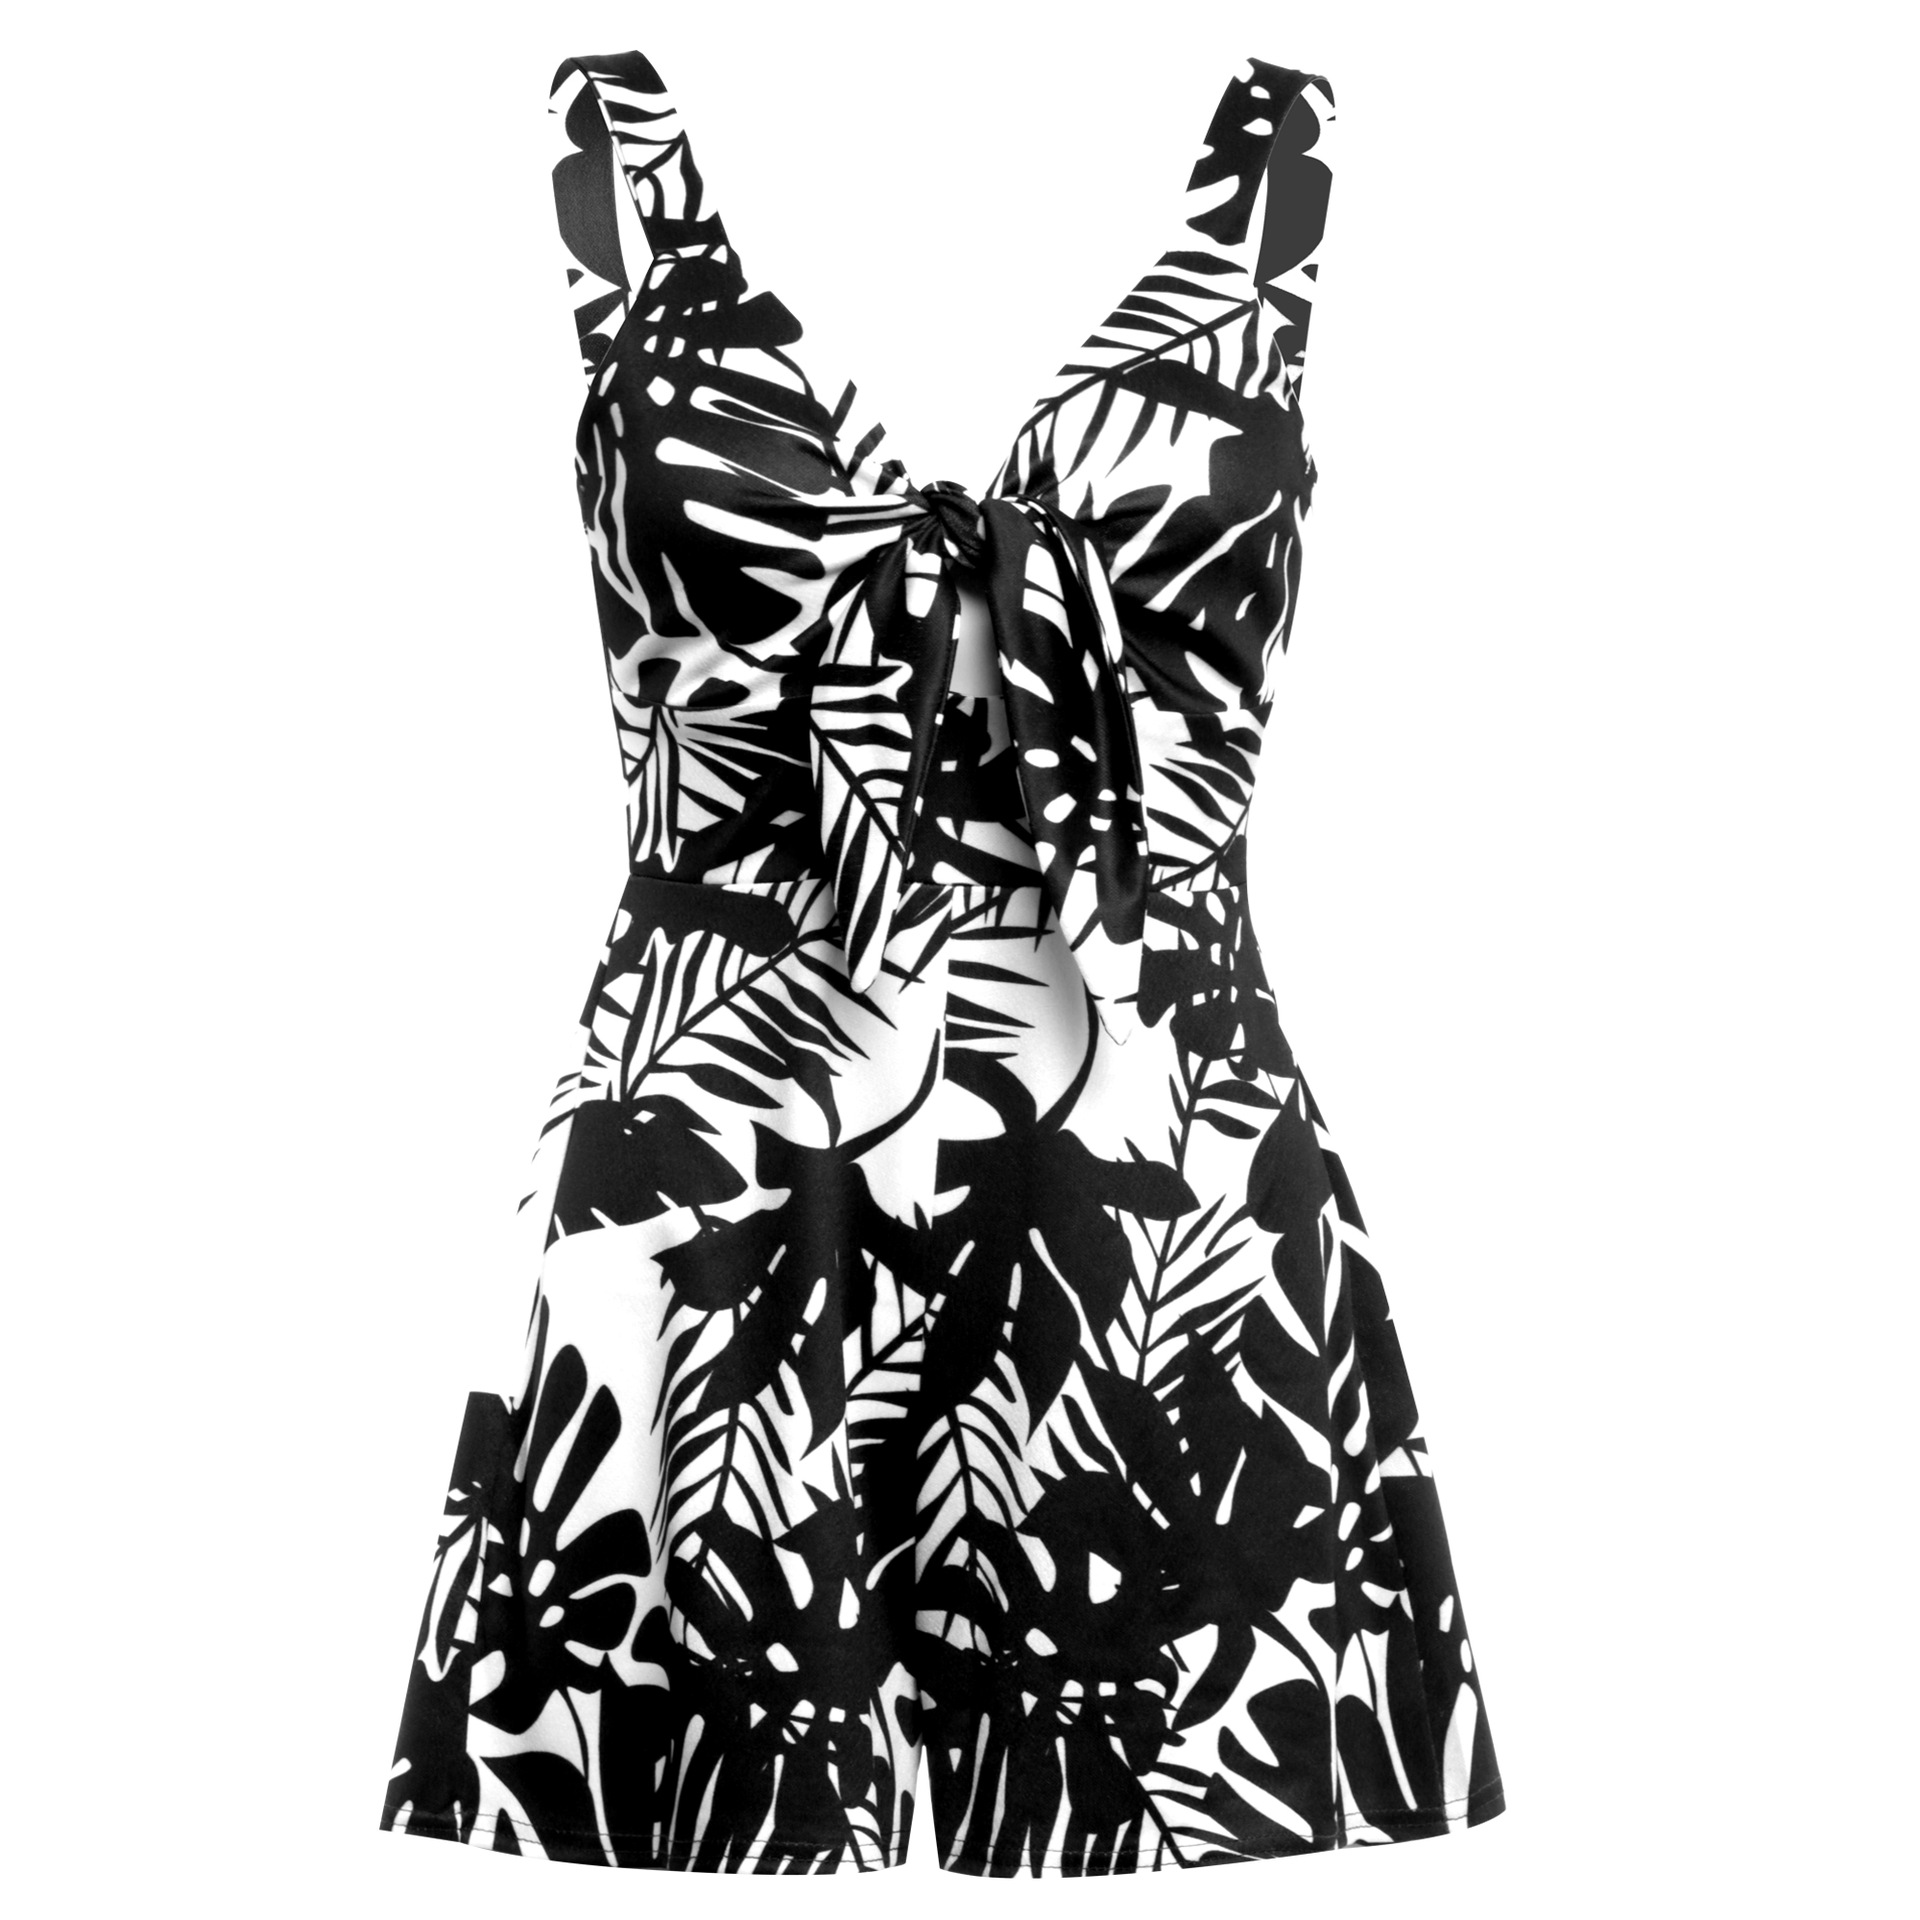 Women's Summer Print Jumpsuit Shorts Casual Loose Short Sleeve V-neck Beach Rompers Sleeveless Bodycon Sexy Party Playsuit 103